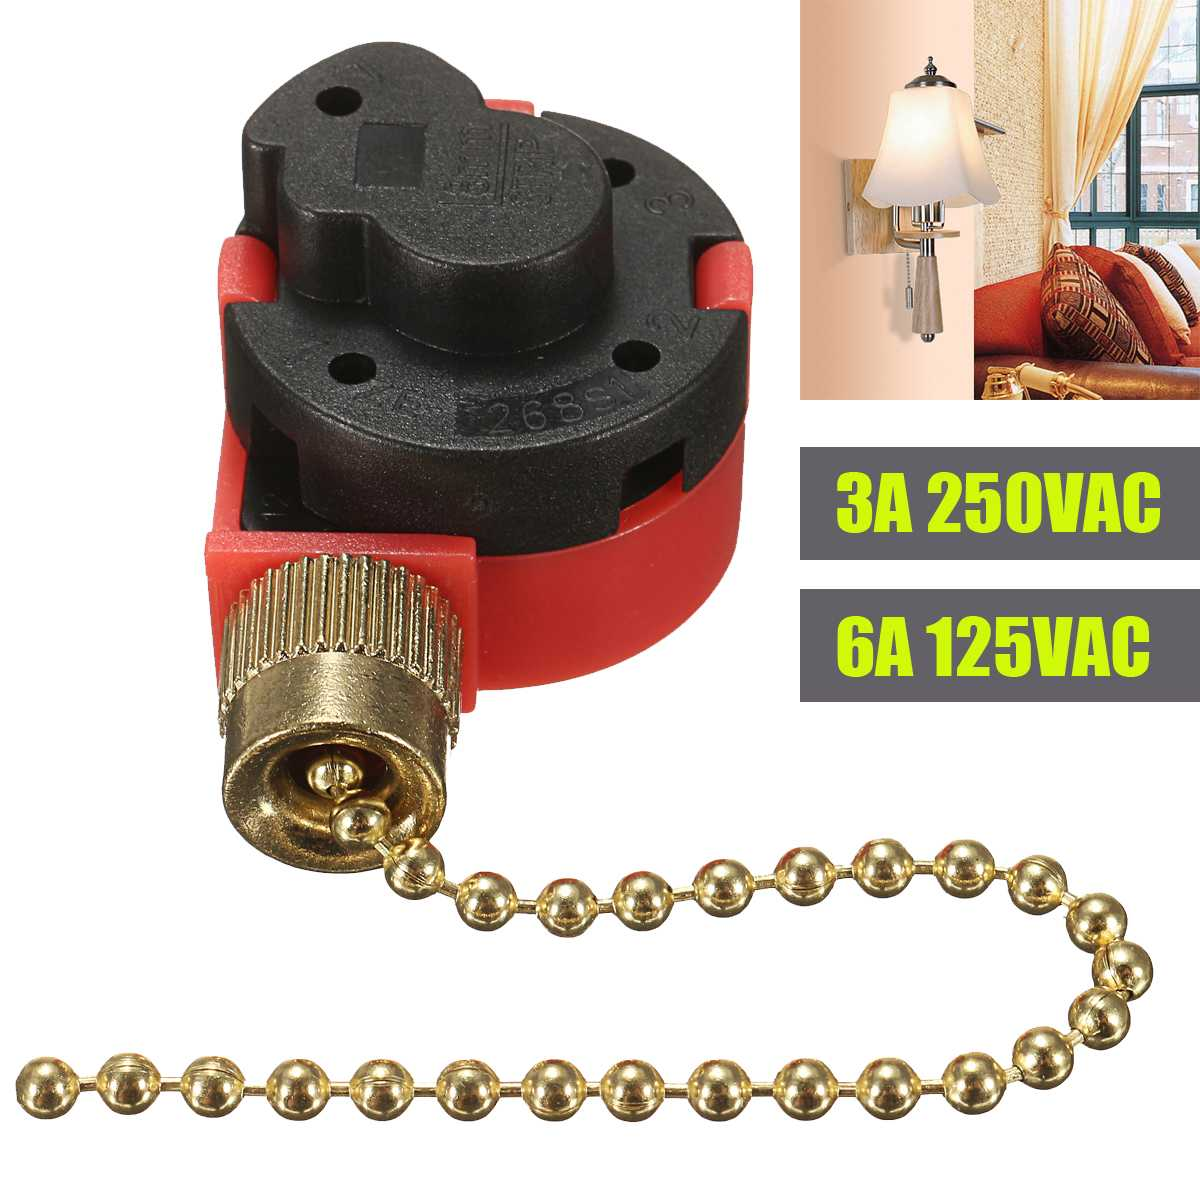 10cm Red Zipper Switch 3 Speed Pull Chain Control Nickel Fan Switch With Antique Brass Chain